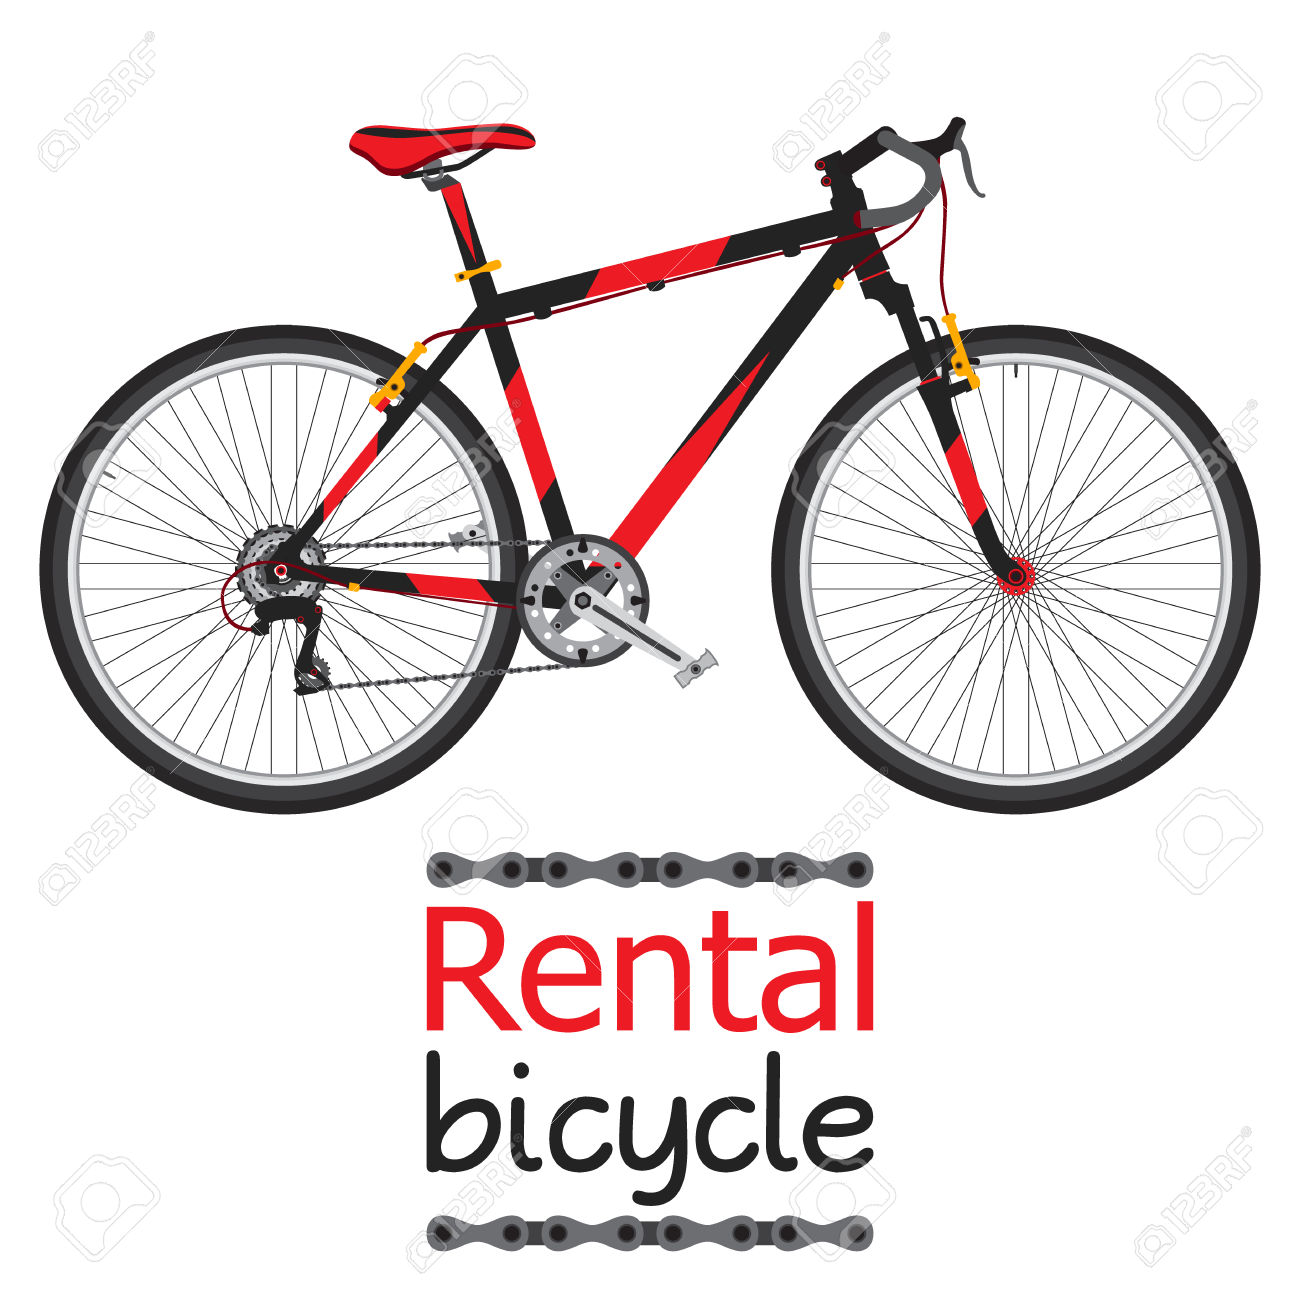 City Bike Hire, Rental Bicycle For Tourists In Flat Style. Royalty.